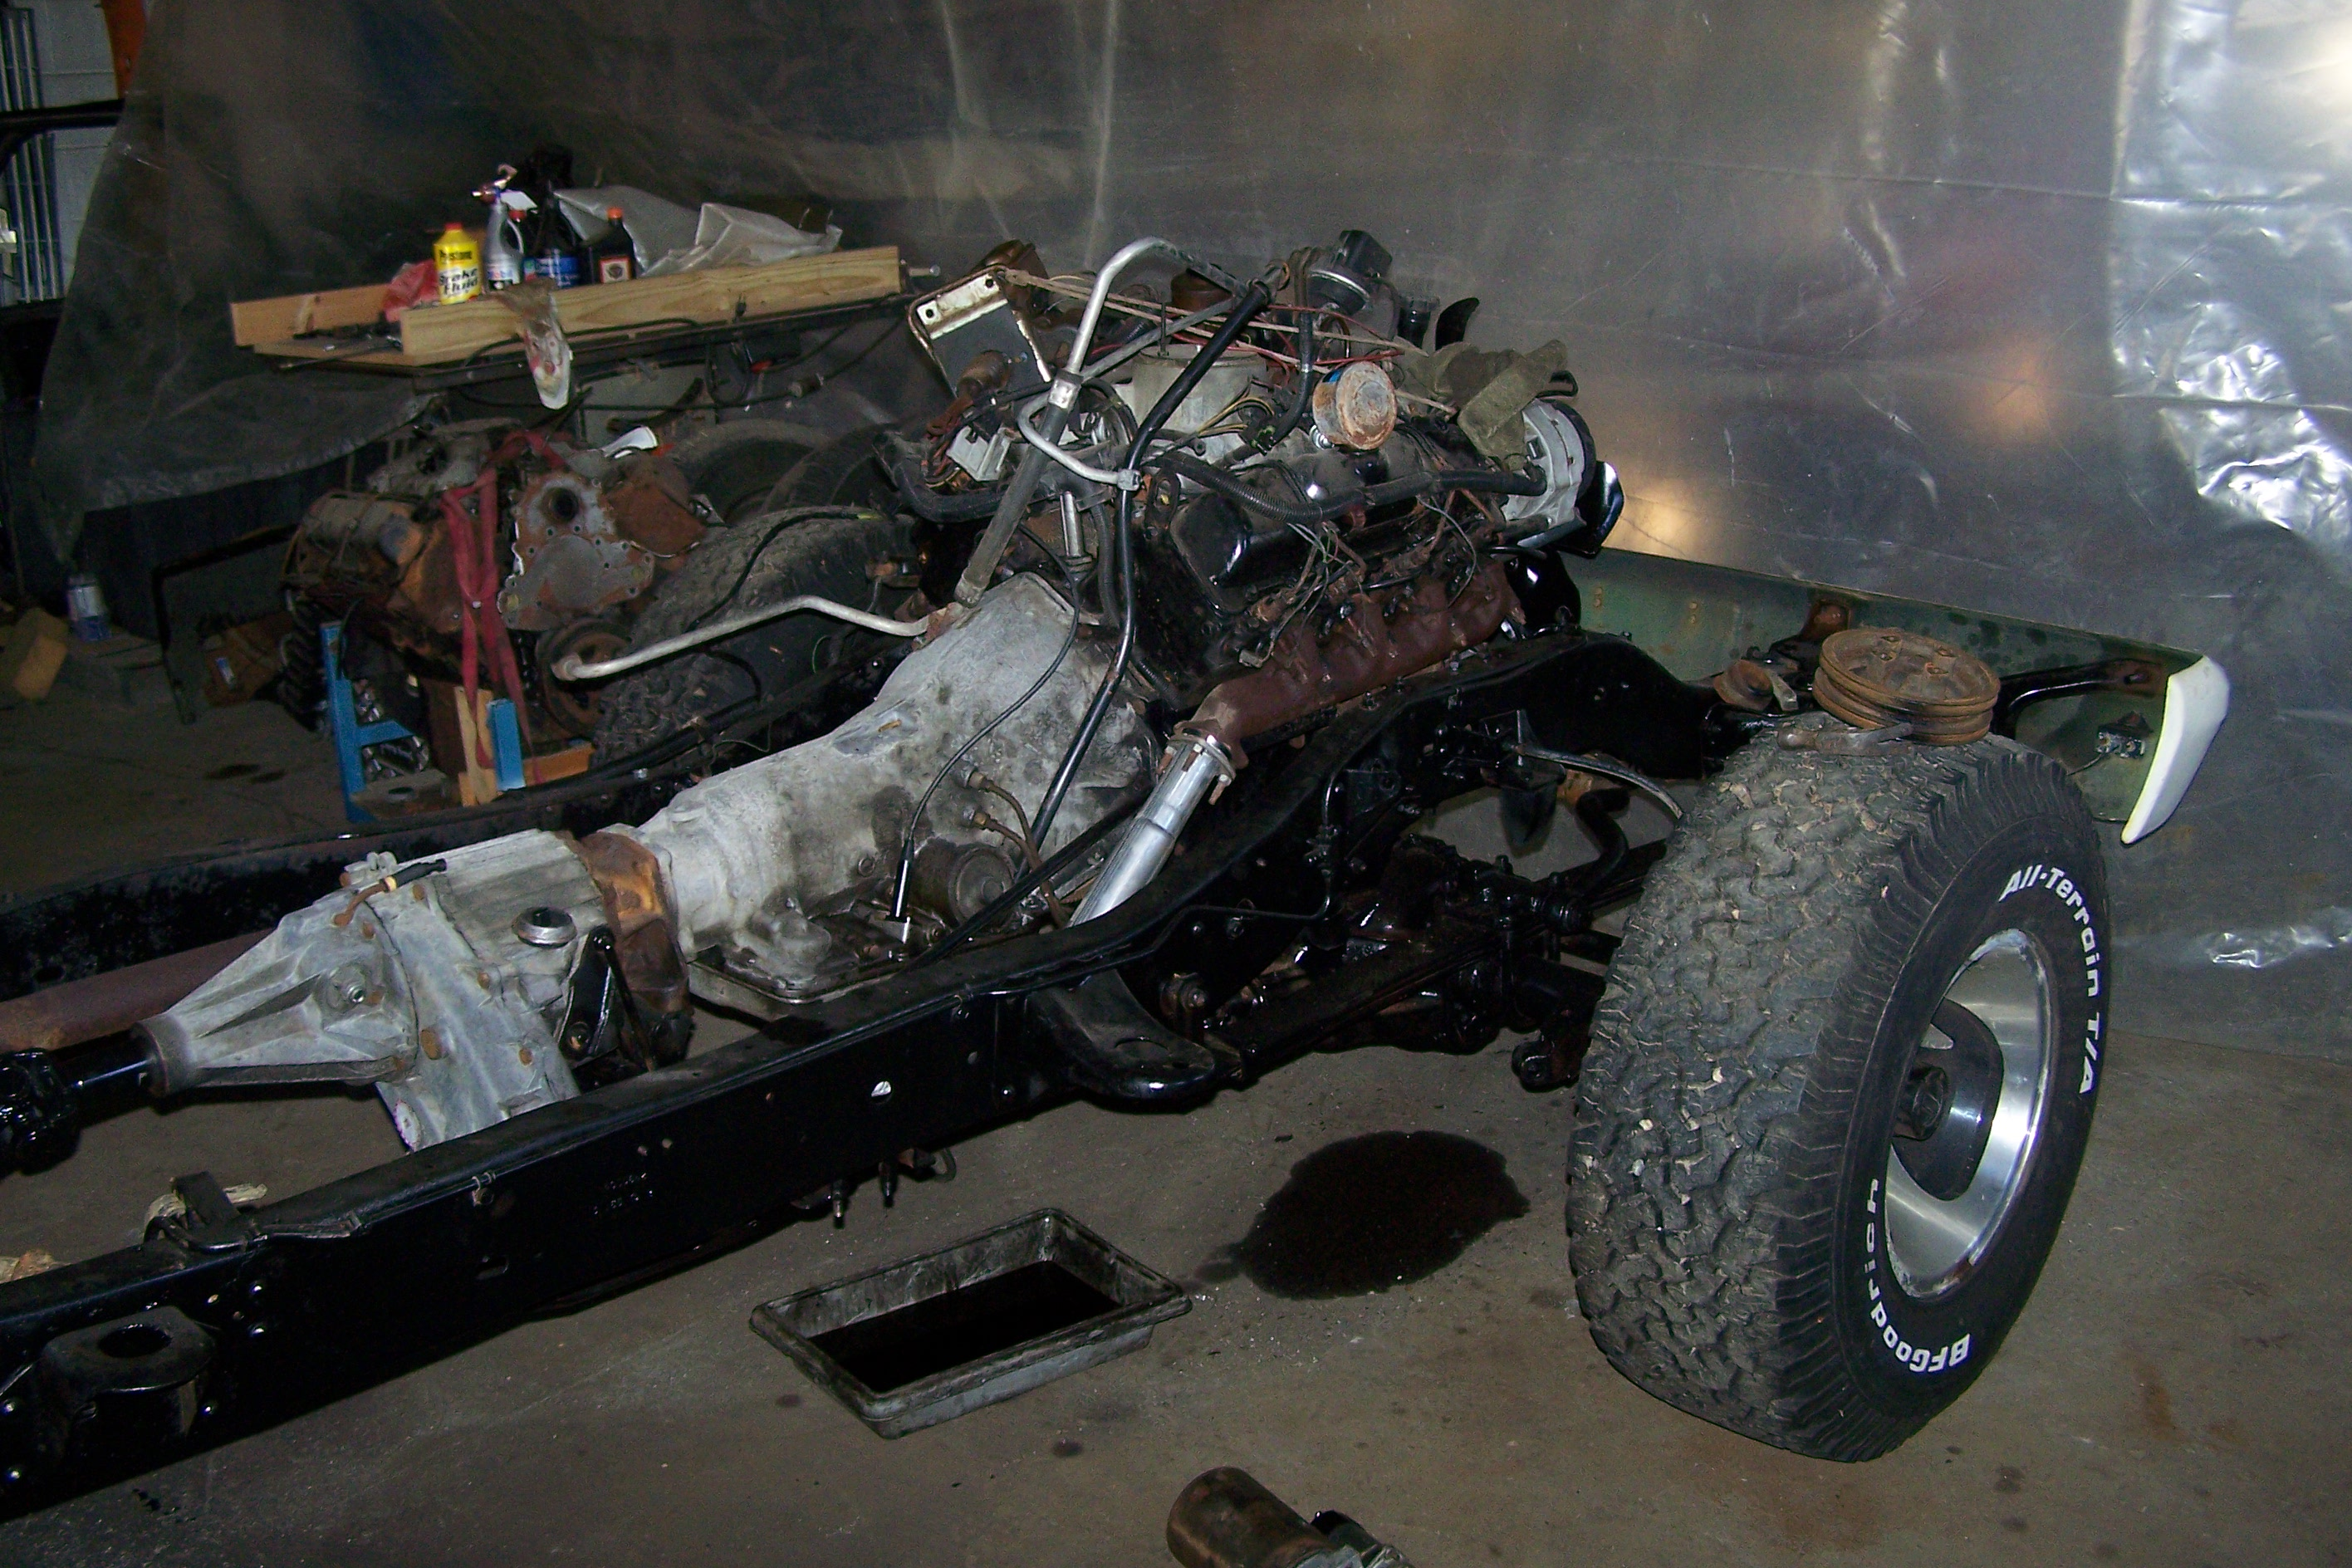 Click image for larger version  Name:84 M1009 Restoration 001.jpg Views:52 Size:1.34 MB ID:1960707